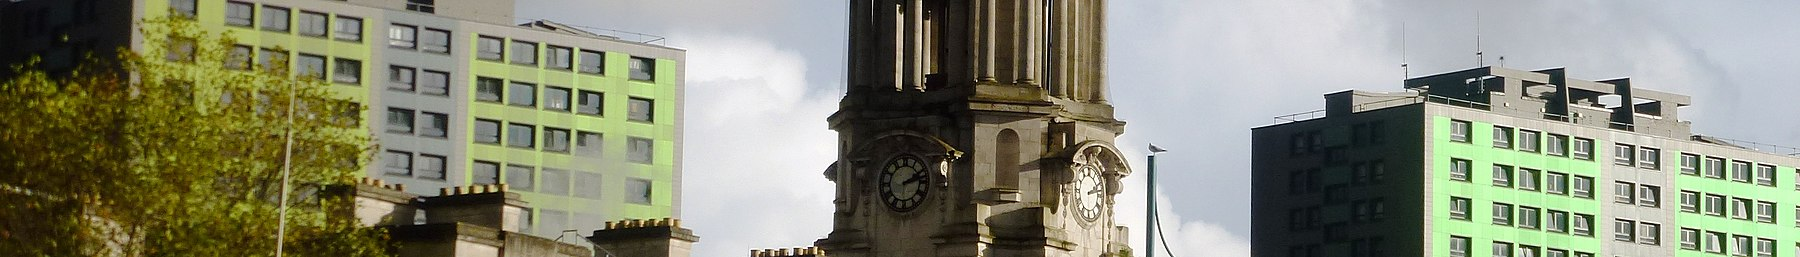 Stockport banner Town Hall.jpg